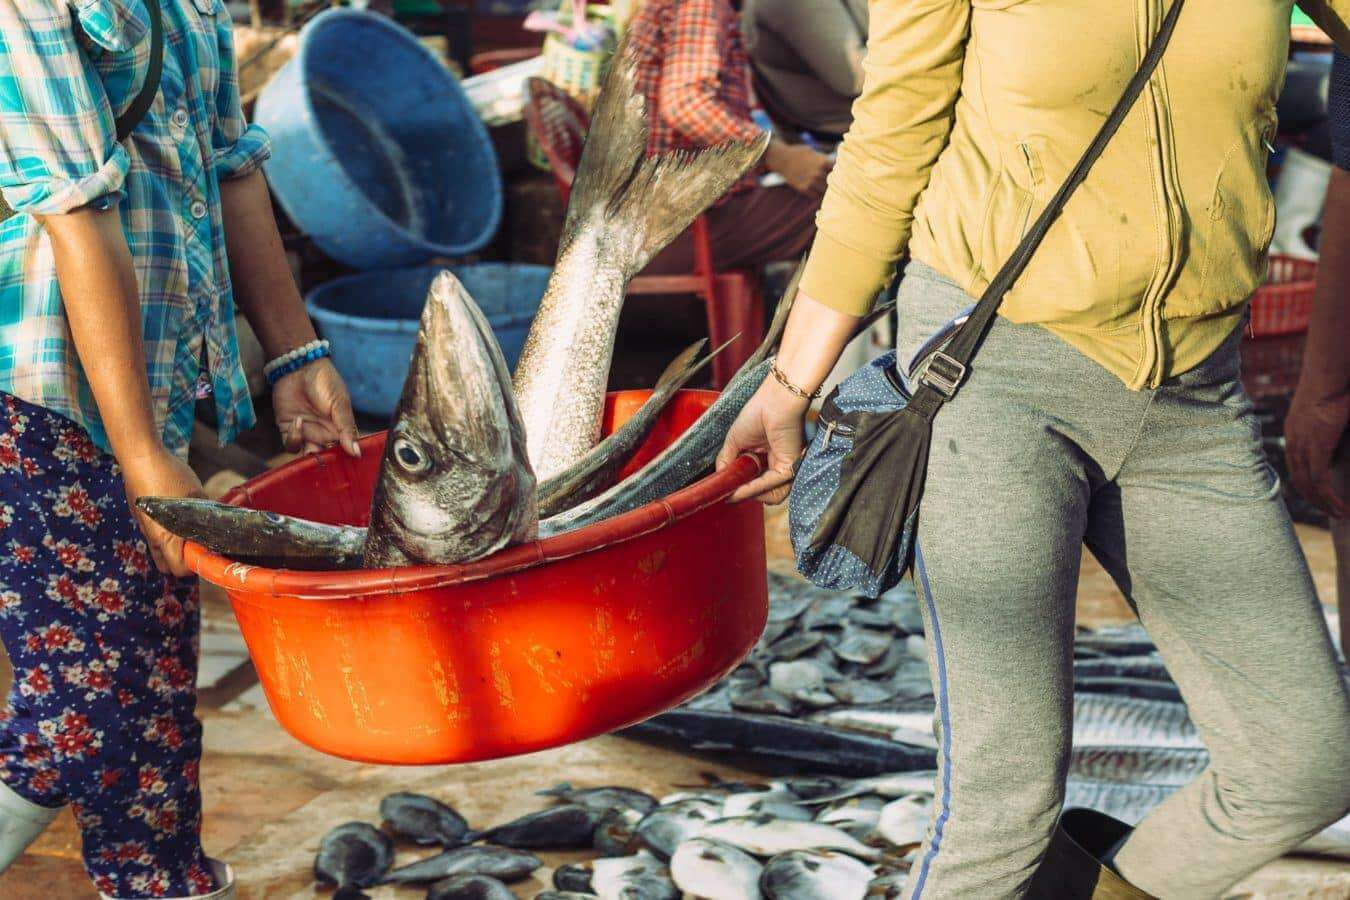 Fish of all shapes and sizes - Hoi An's markets